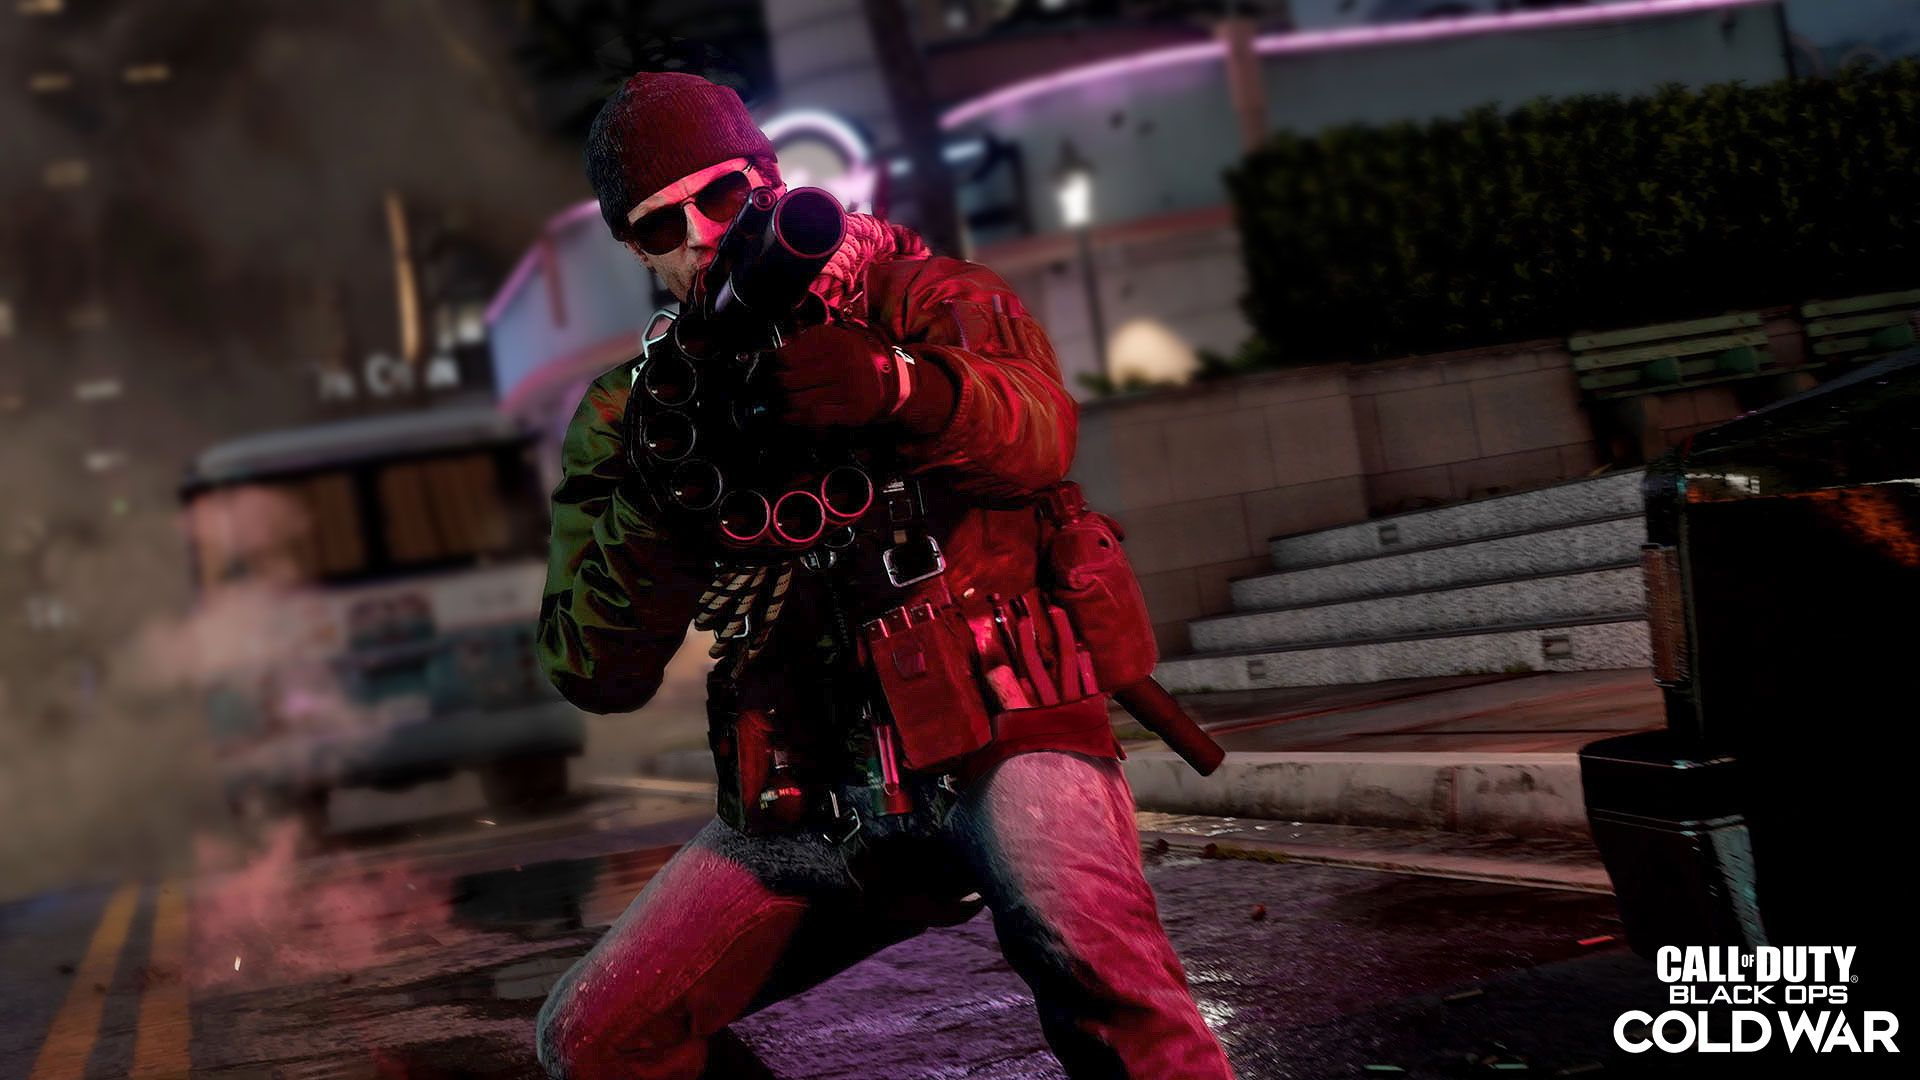 Call Of Duty Black Ops Cold War Multiplayer Trailer Open Beta Shown Collider